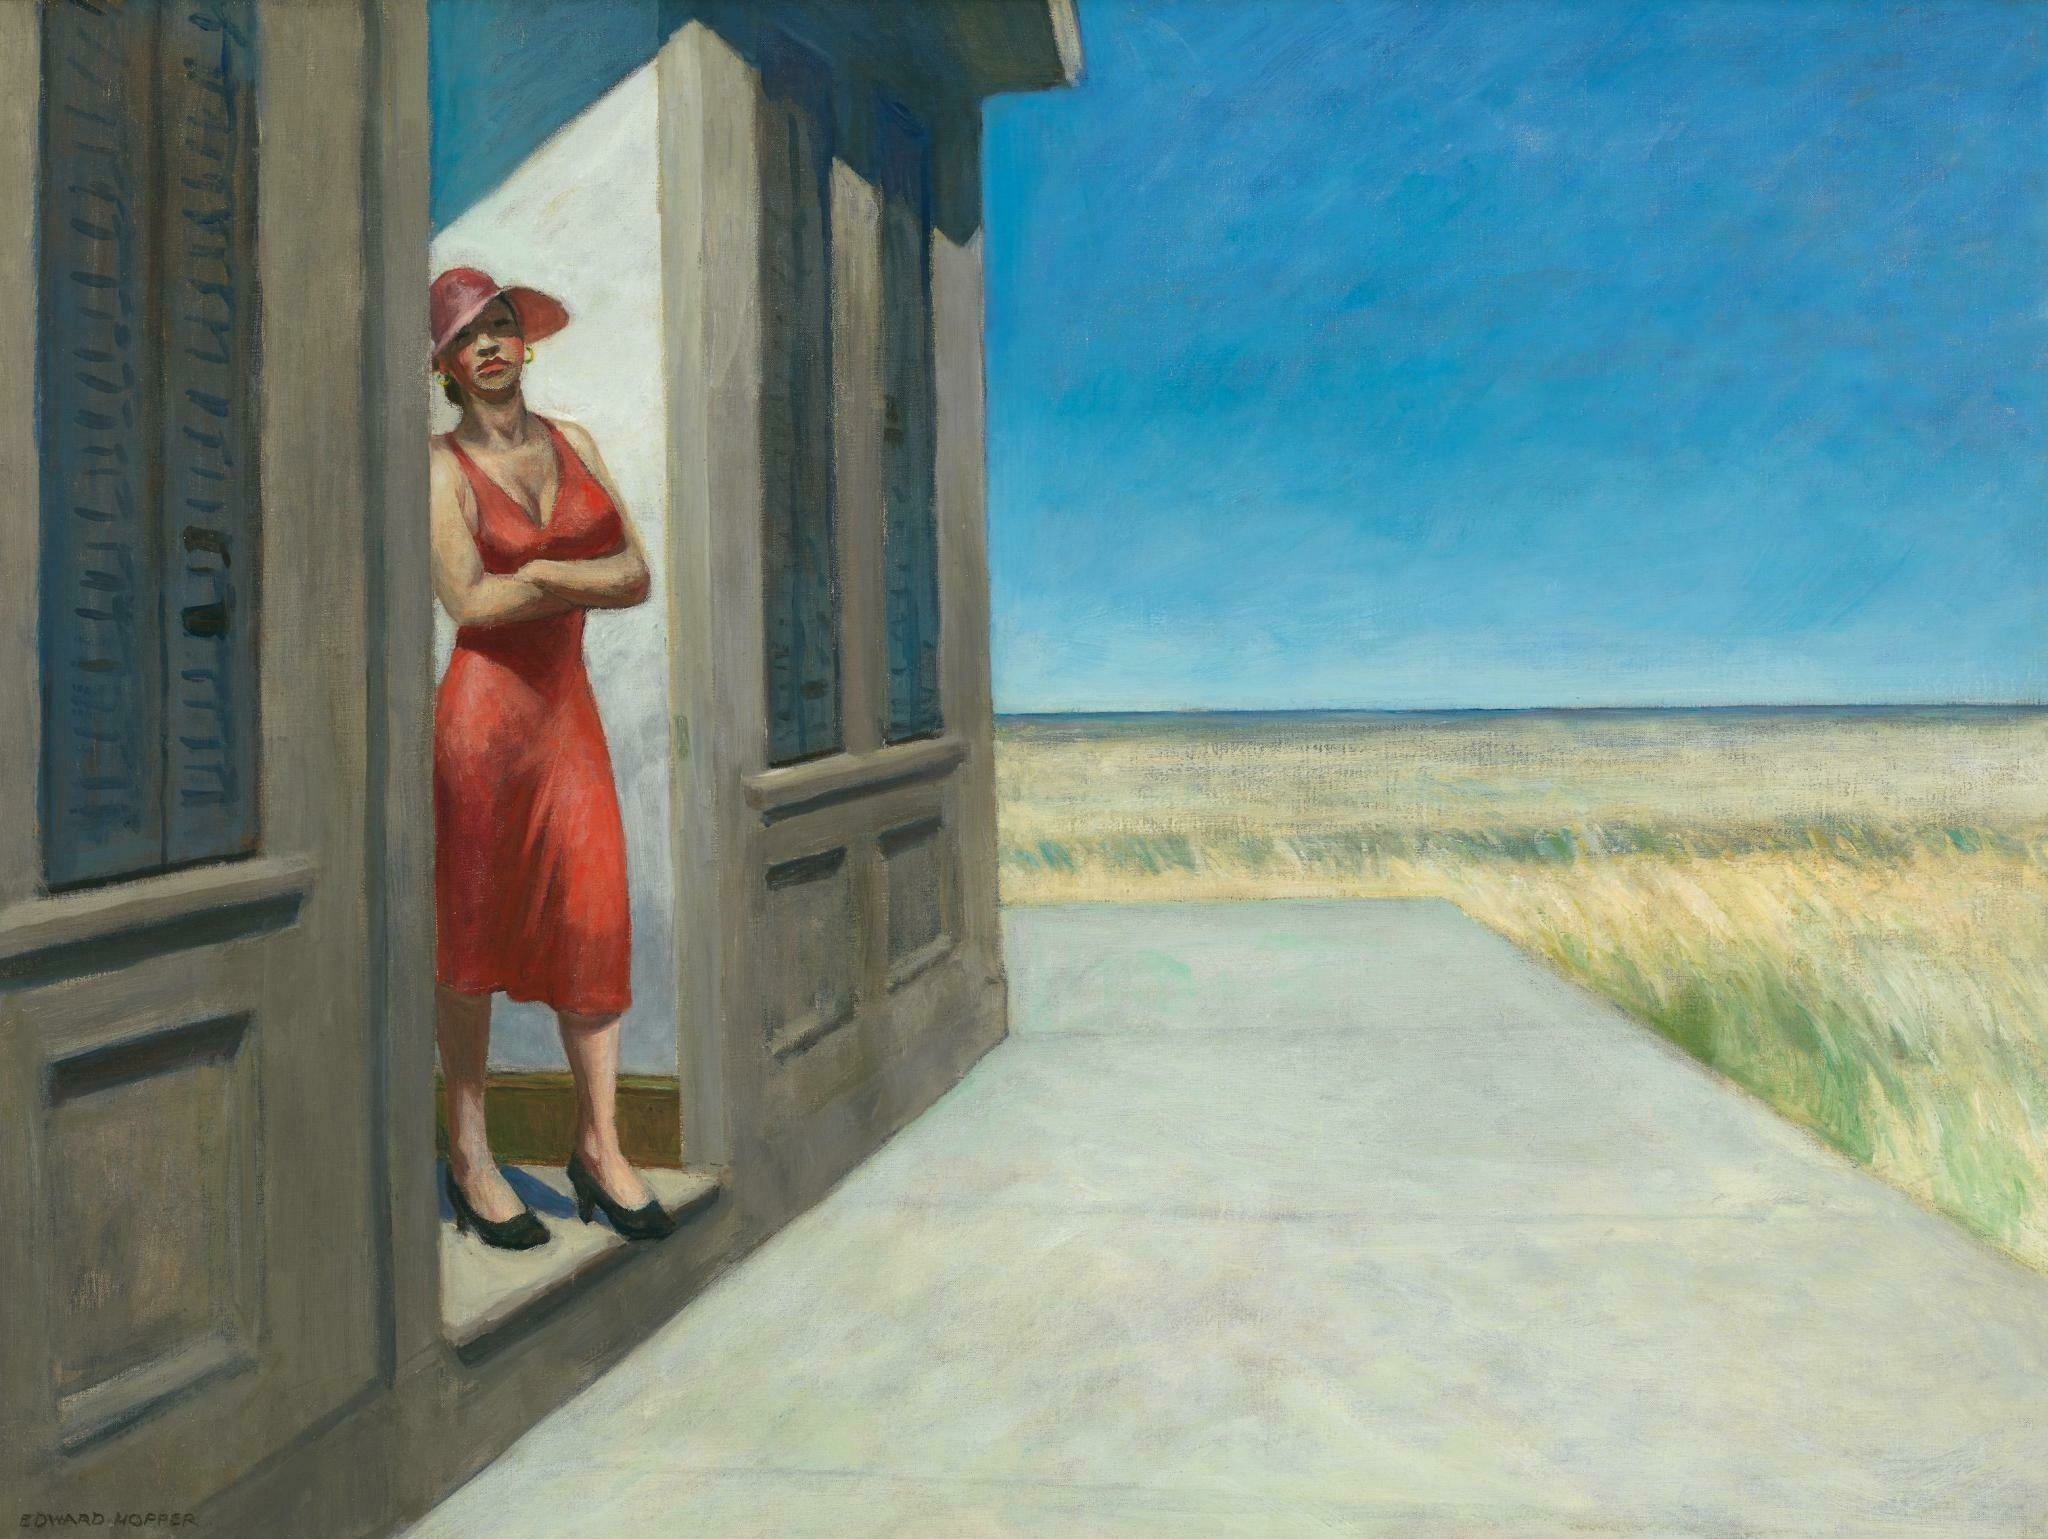 A white woman wearing a a burnt orange dress and sun hat crosses their arms and leans aganist a doorway